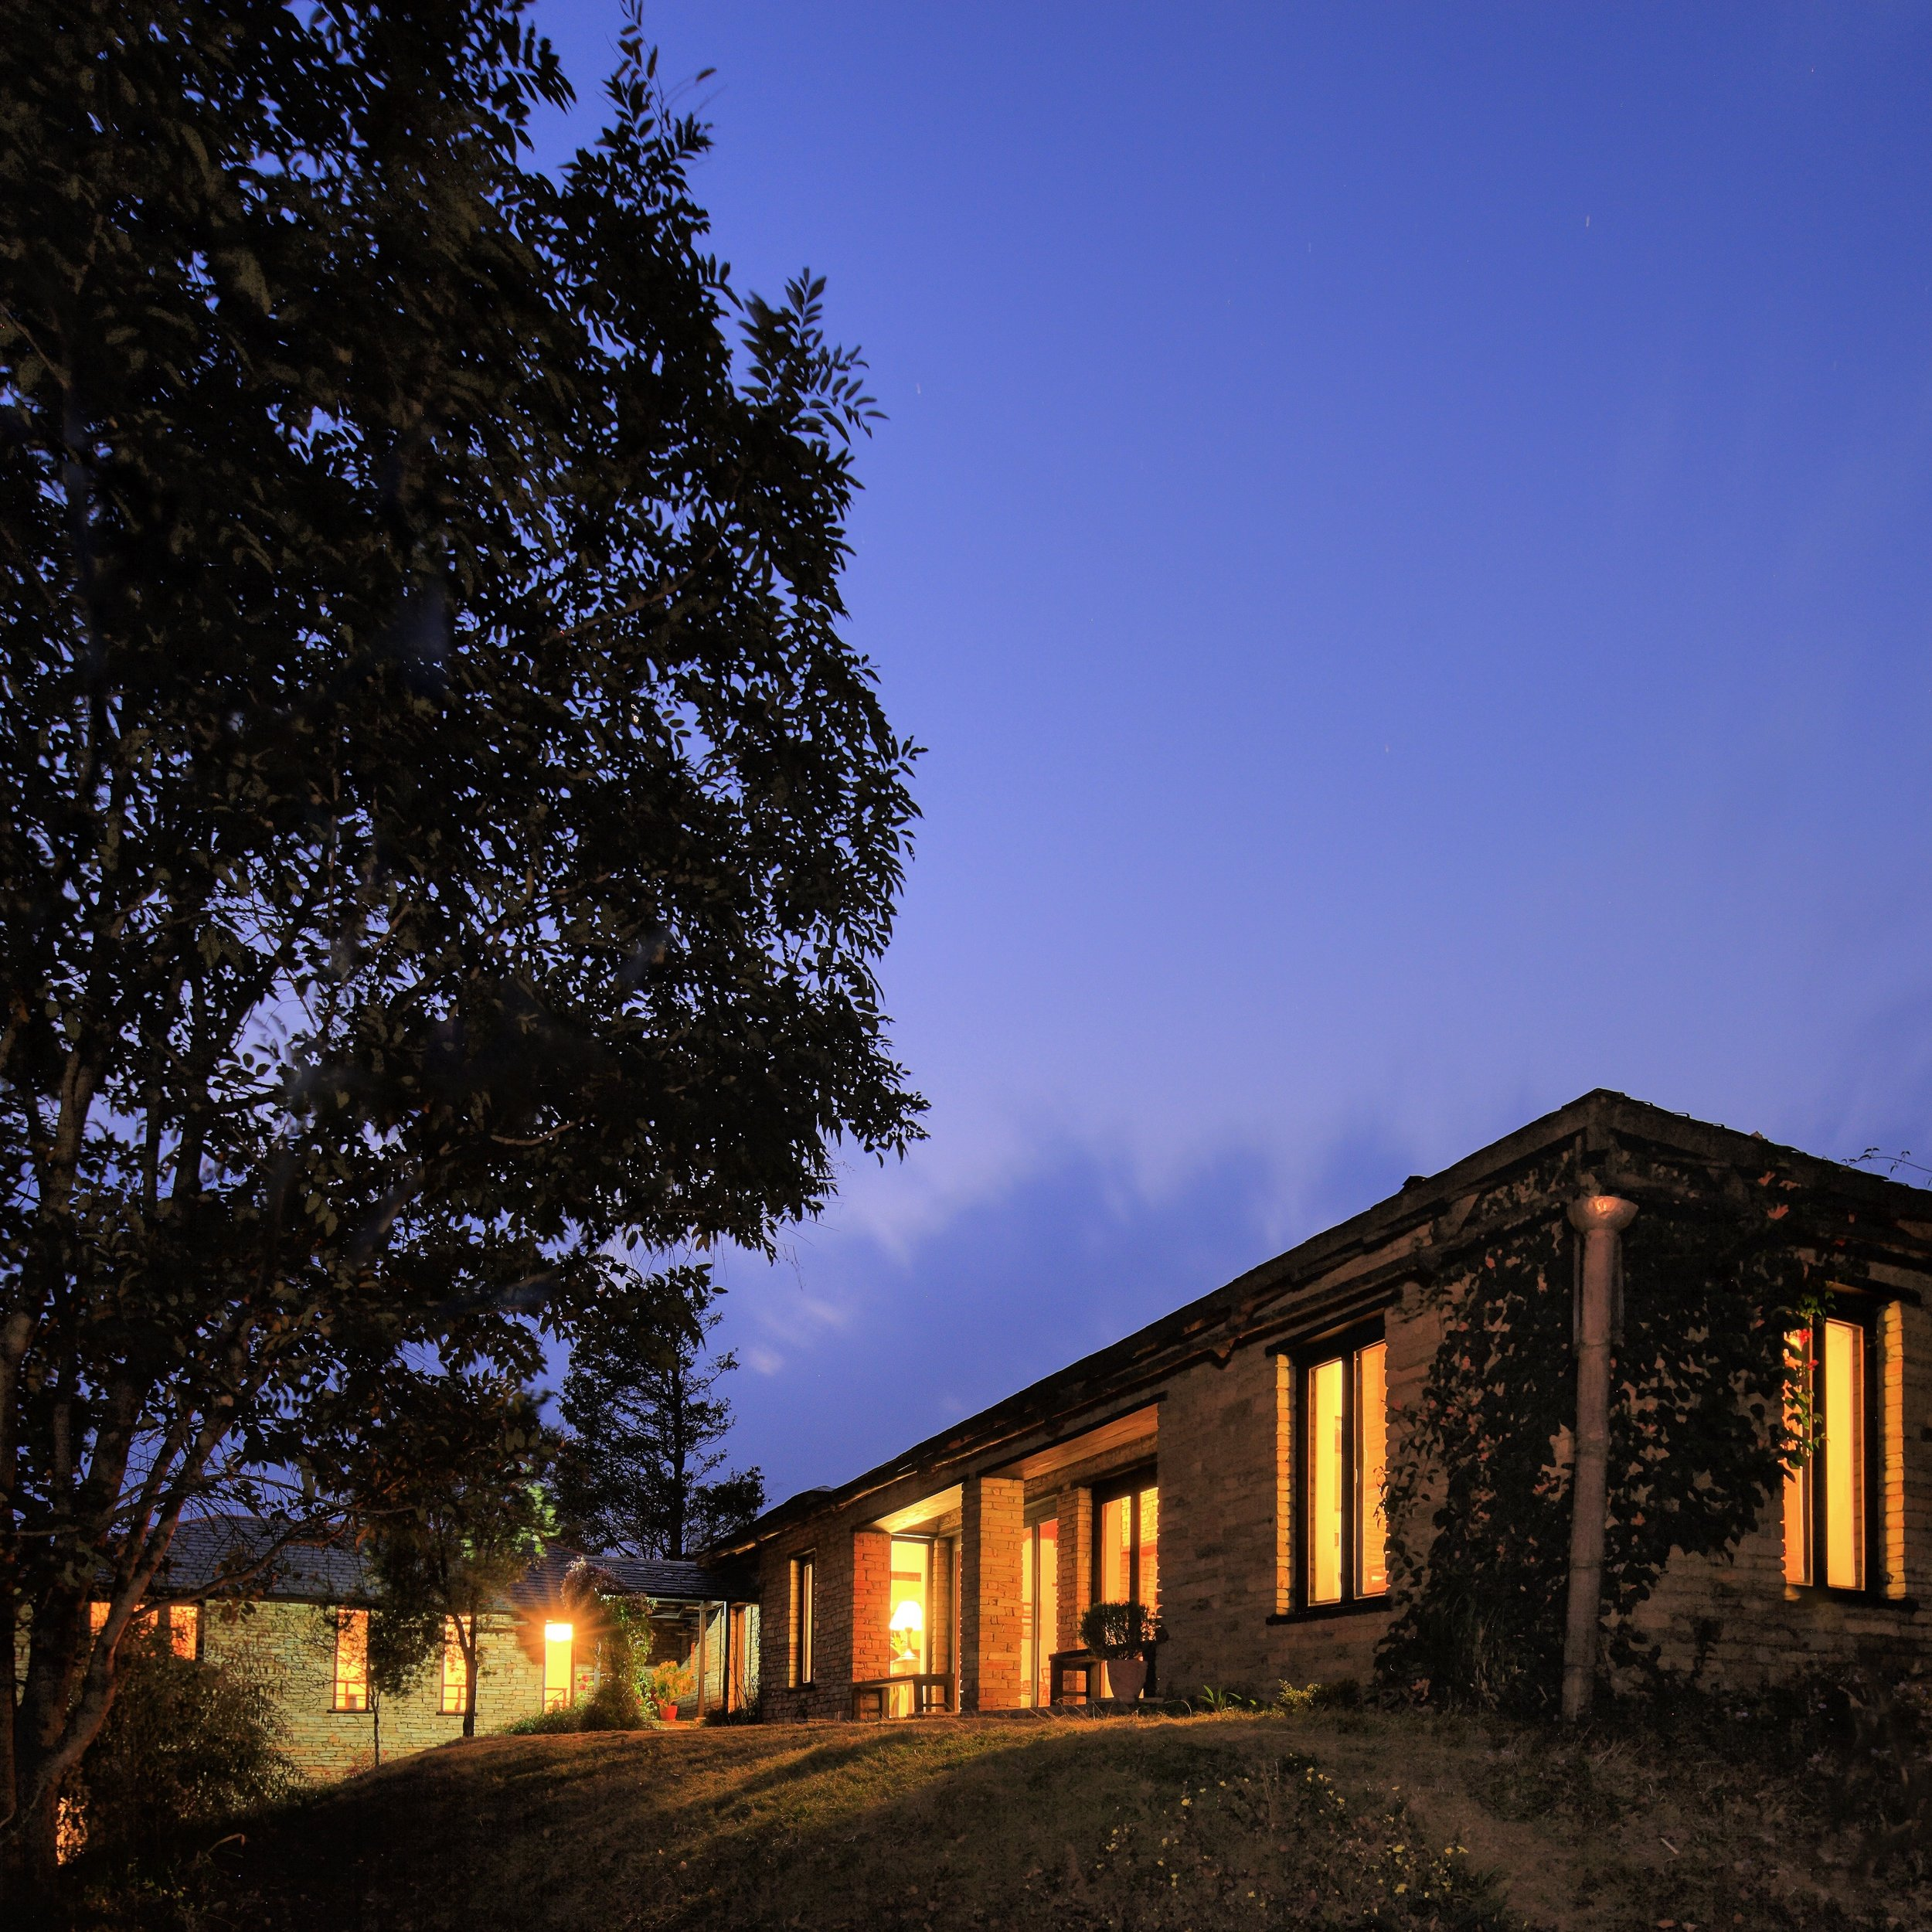 Lodge Exterior - Main Building by night Rajbansh.jpg